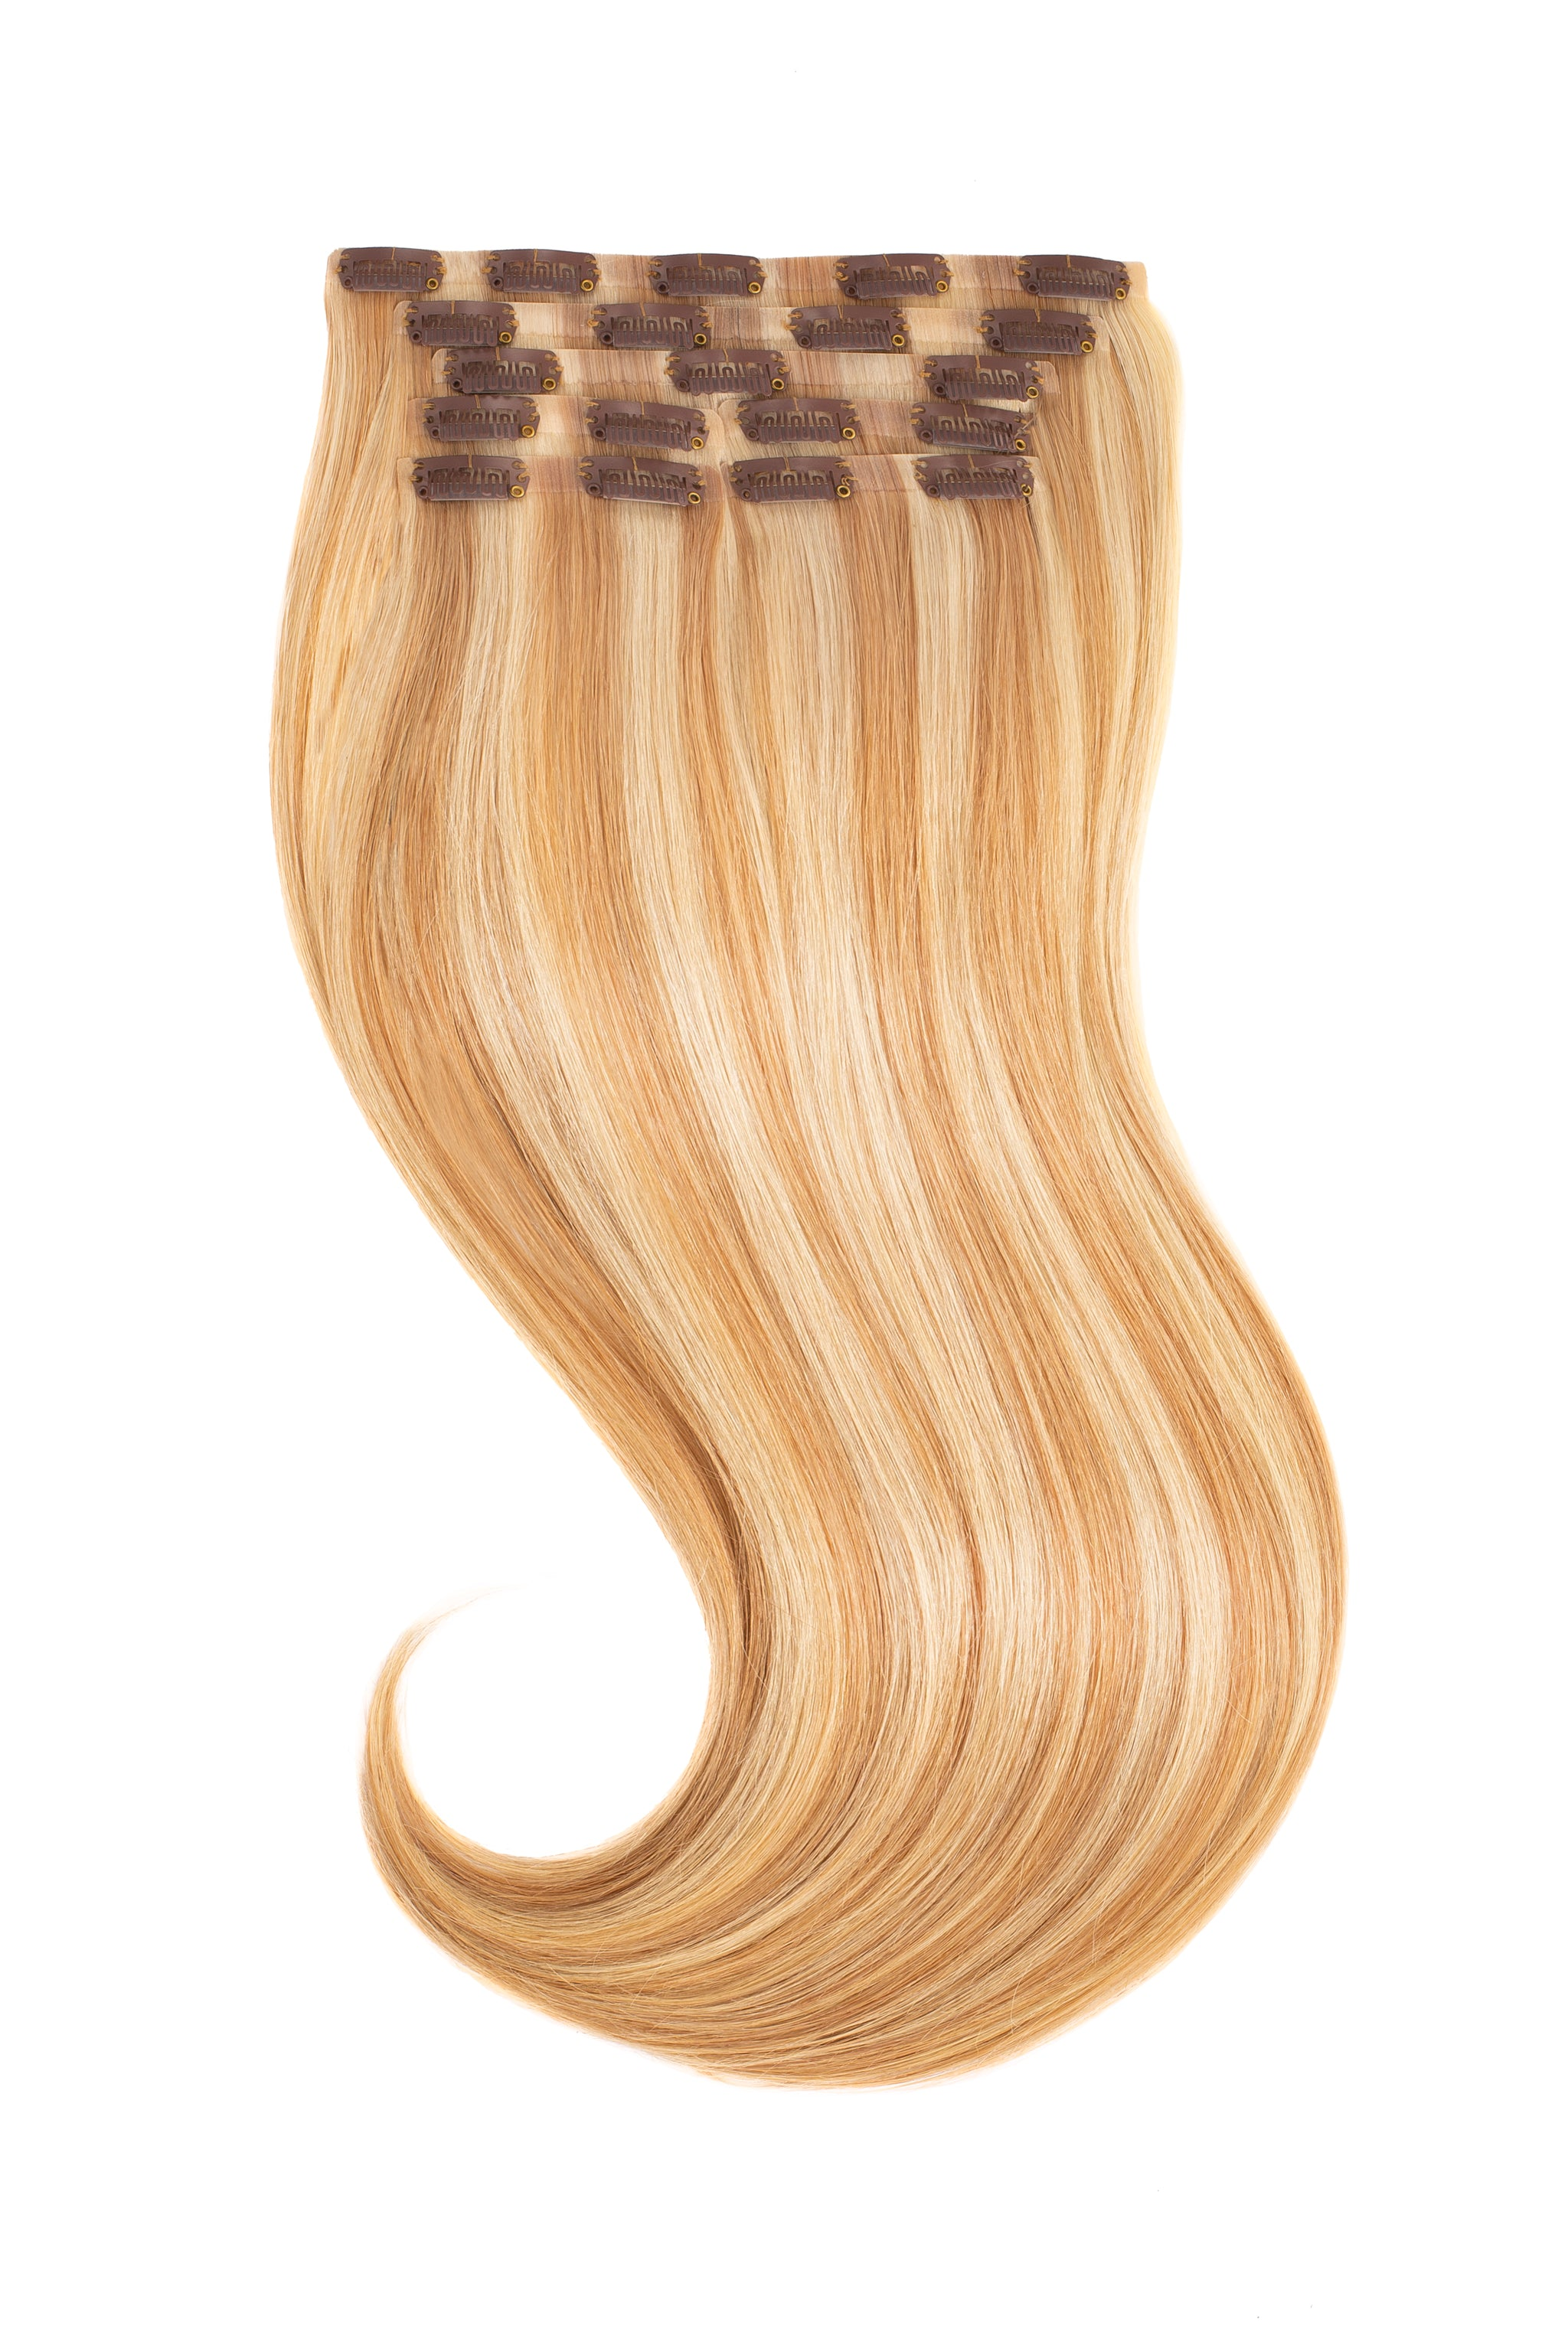 Honey Blonde Highlights 18 22 Clip In Glam Seamless Glam Seamless Hair Extensions